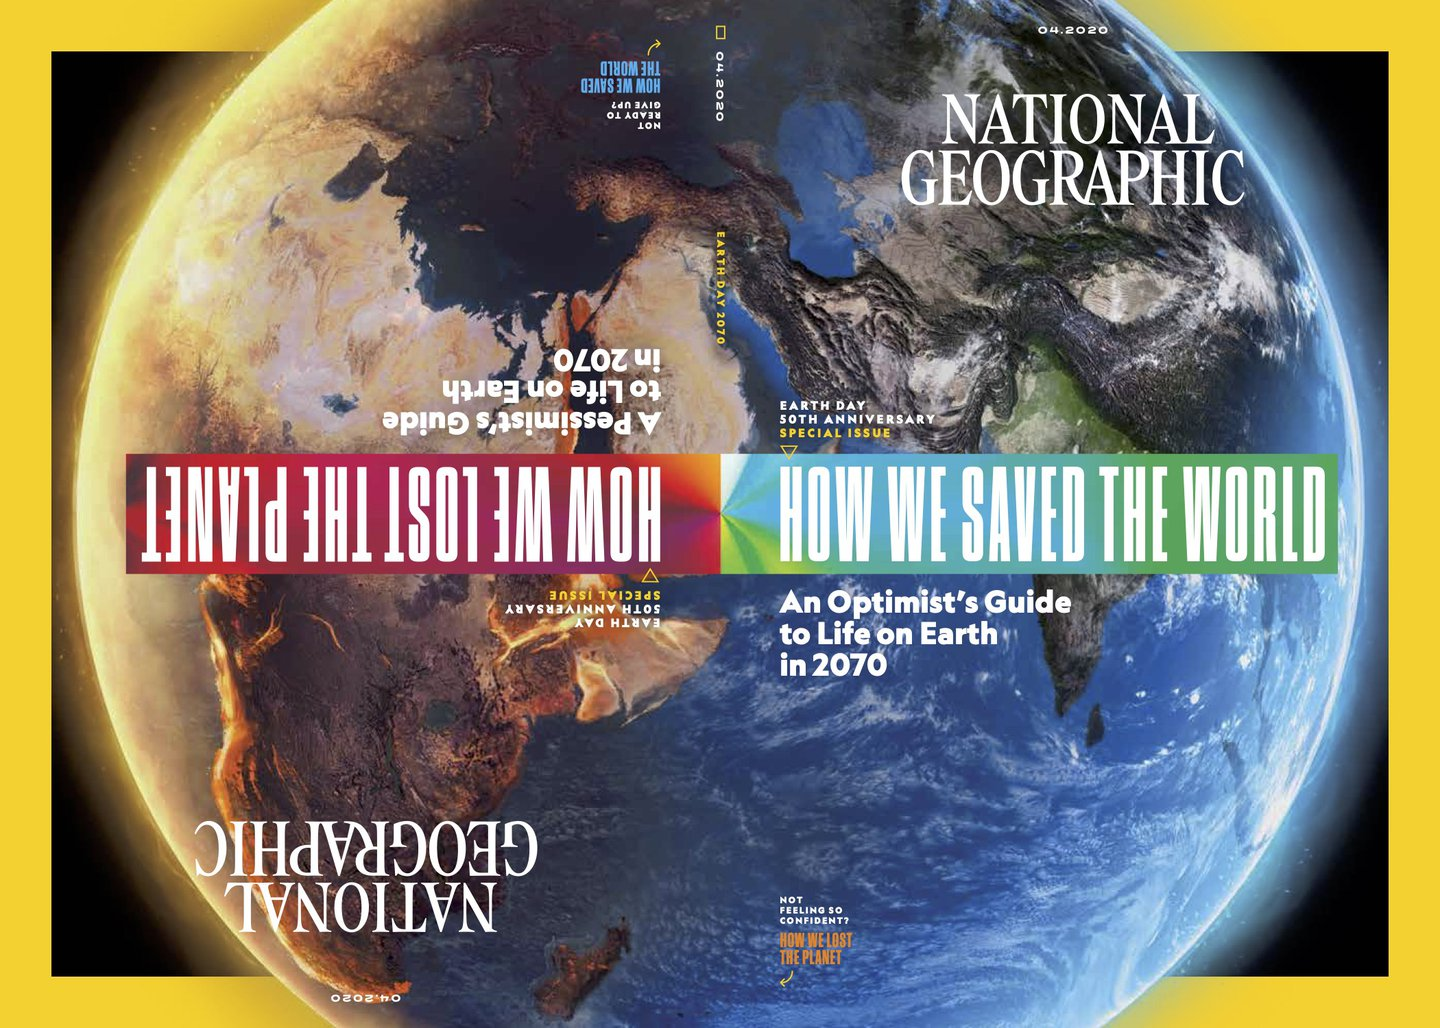 National Geographic's creative director explains the Optimism vs Pessimism issue